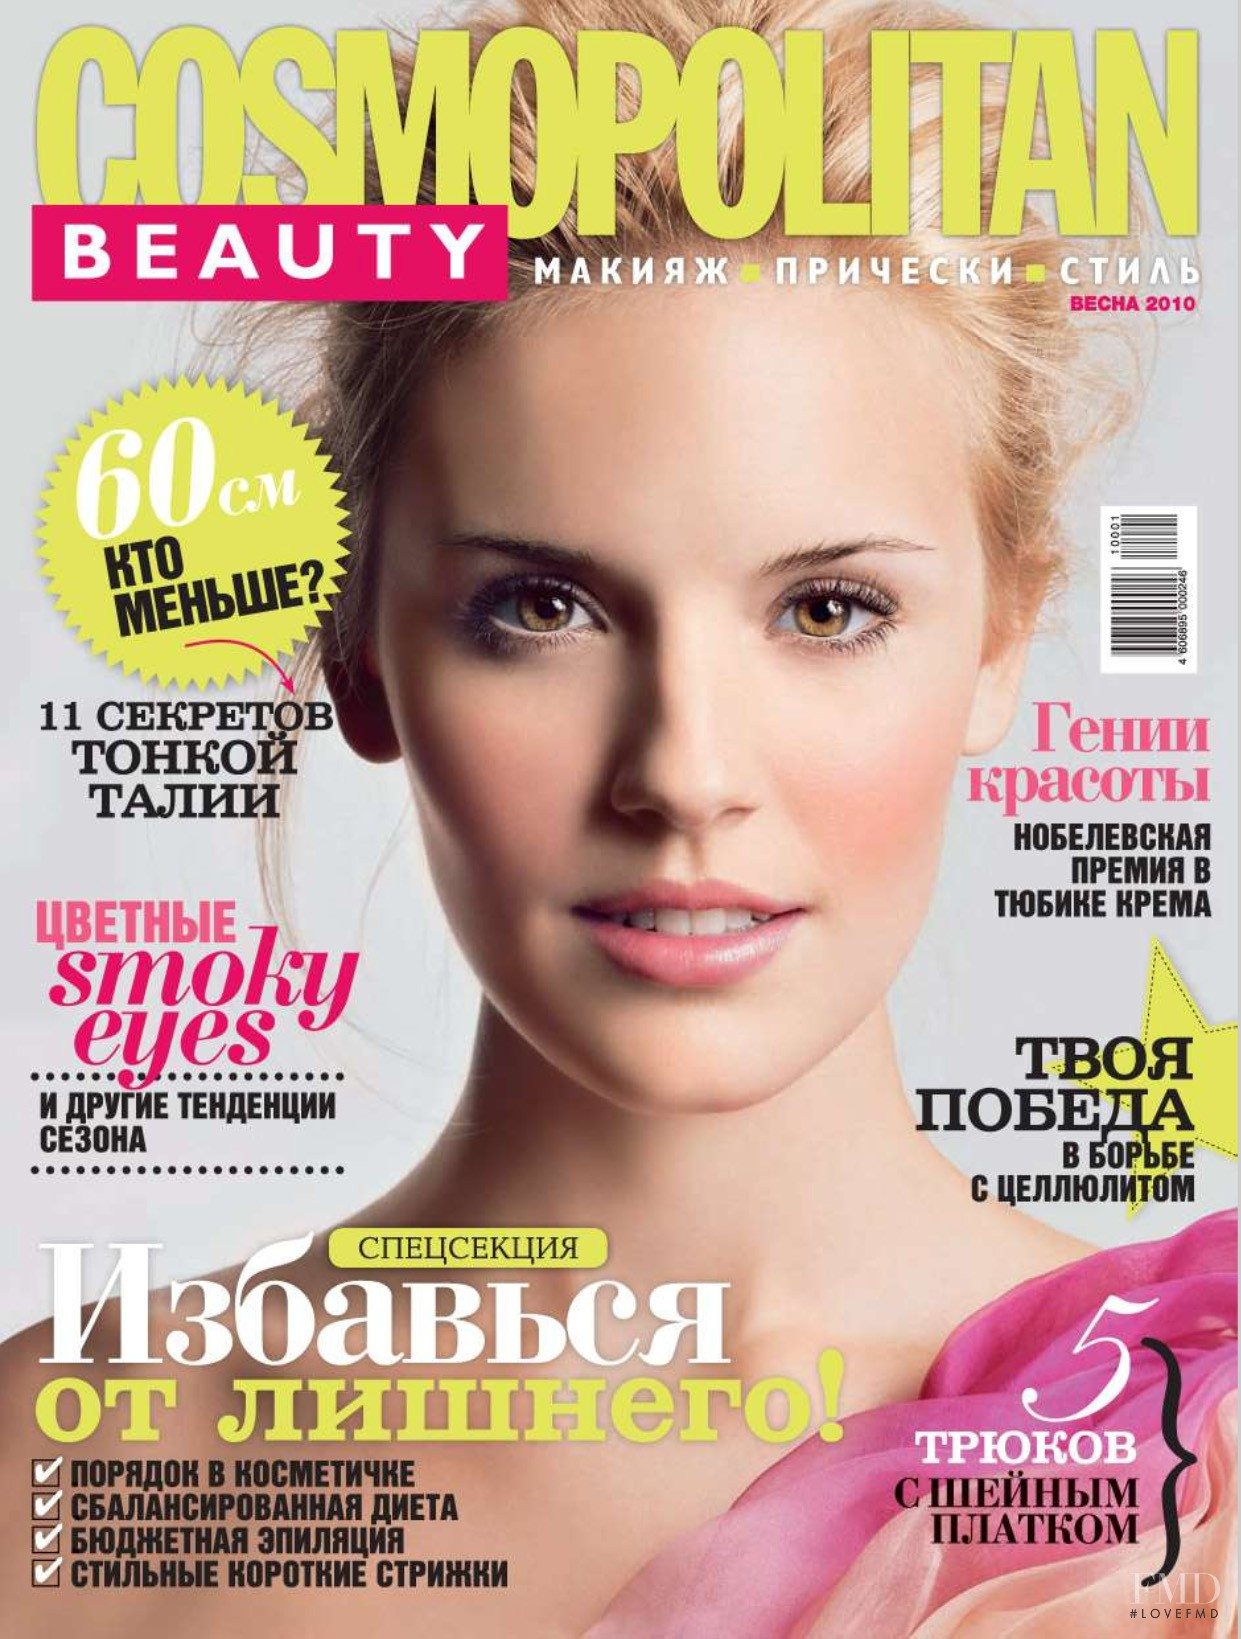 Cover Of Cosmopolitan Beauty Russia , March 2010 (ID:4504